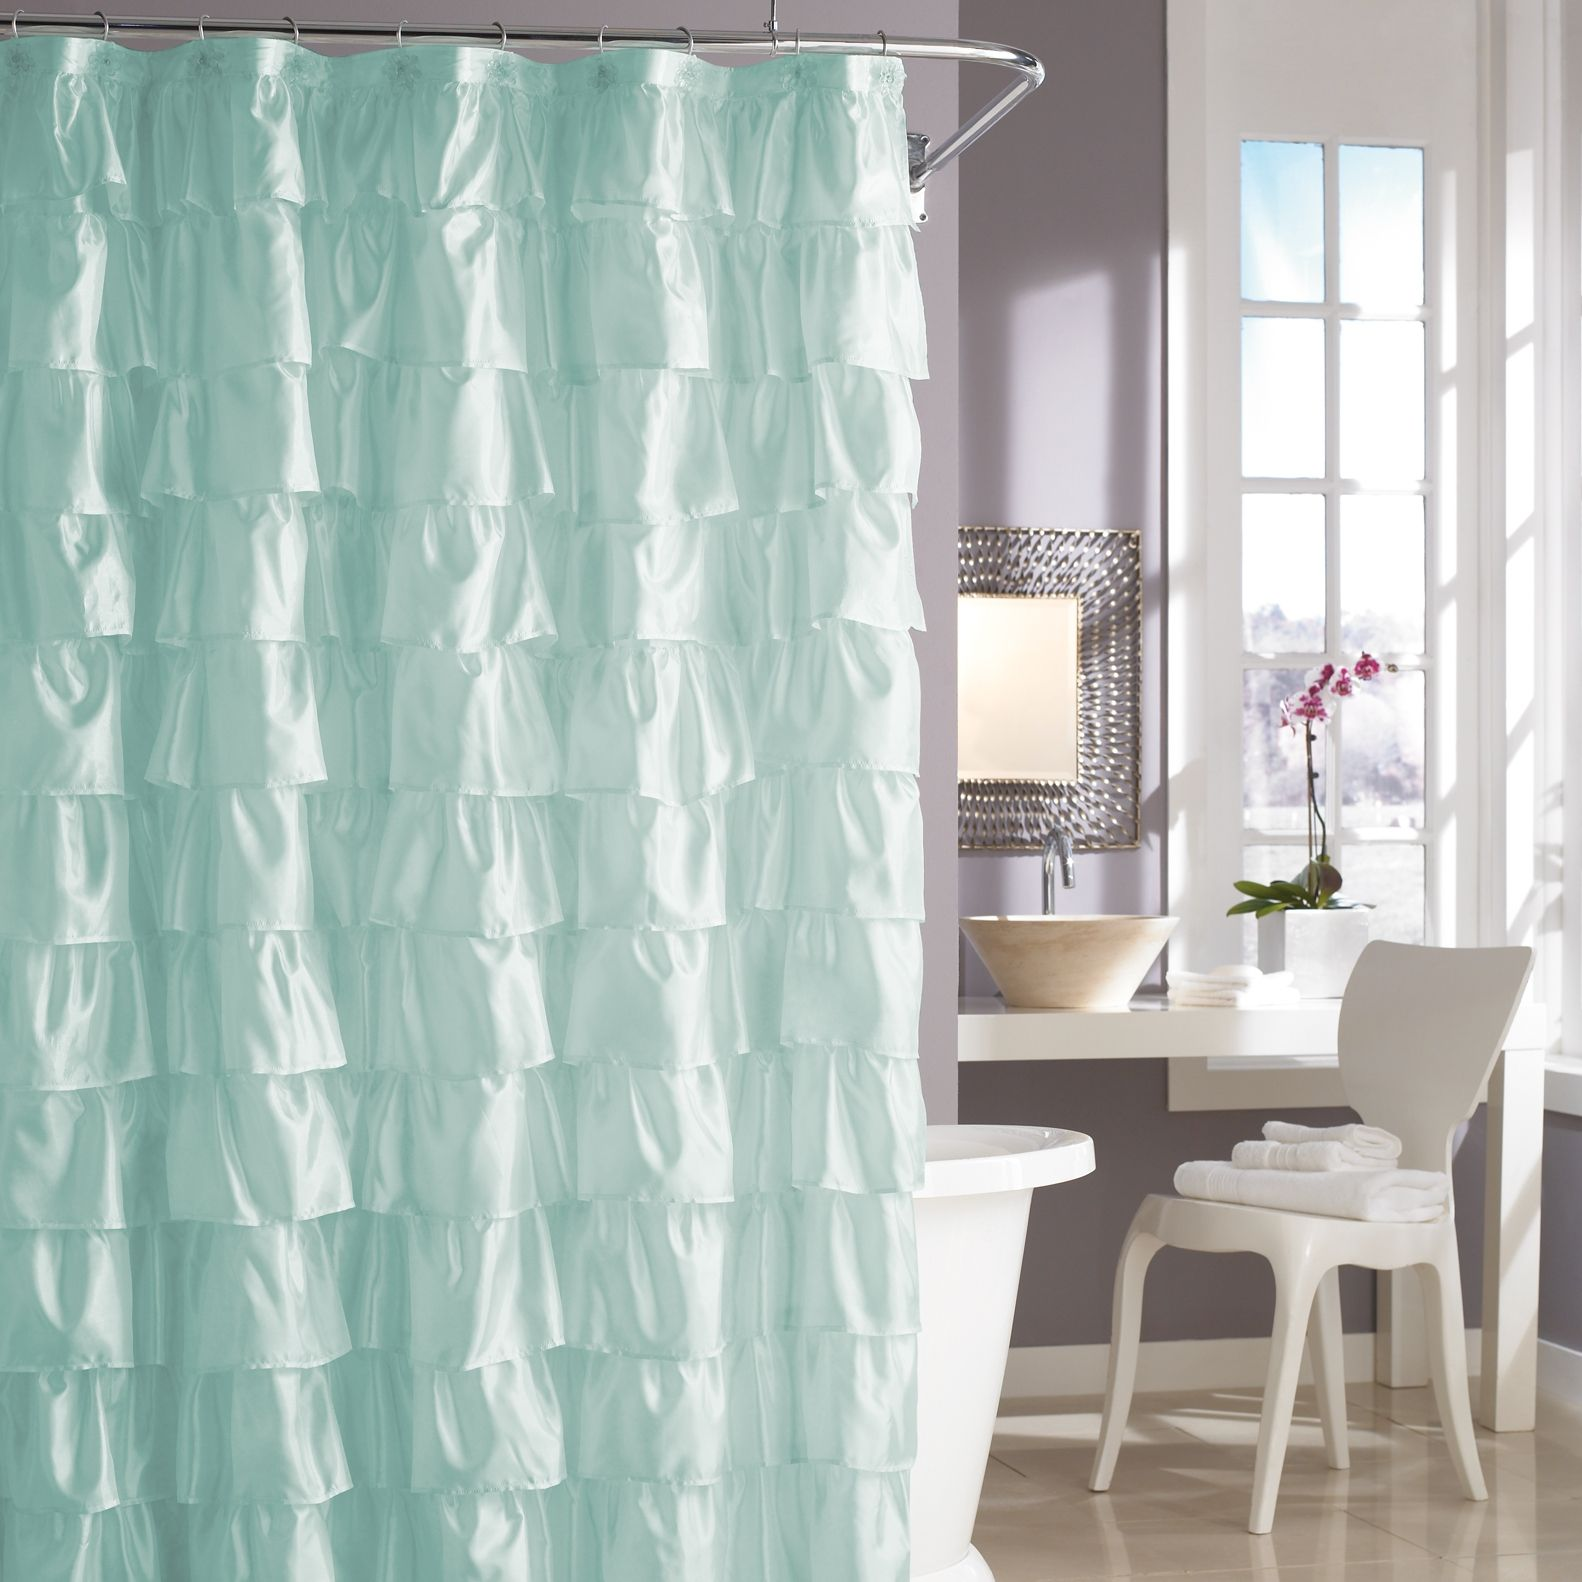 Steve Madden Ruffles Shower Curtain In Pale Aqua // Looks Kind Of Like The  Uber